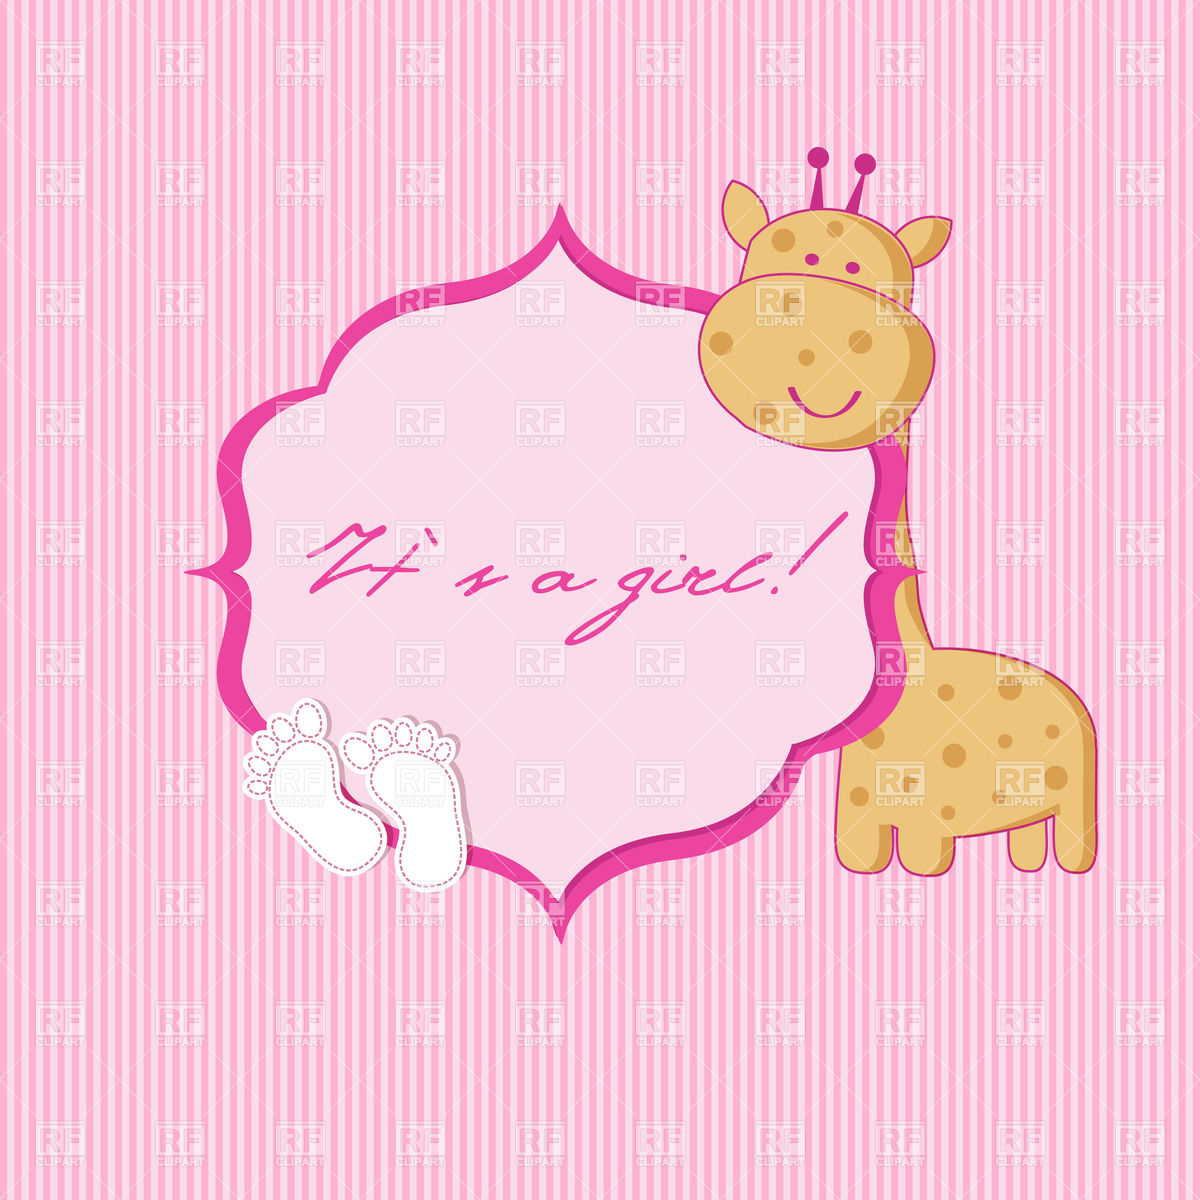 Baby girl birth announcement card with cartoon giraffe and footprints Stock  Vector Image.